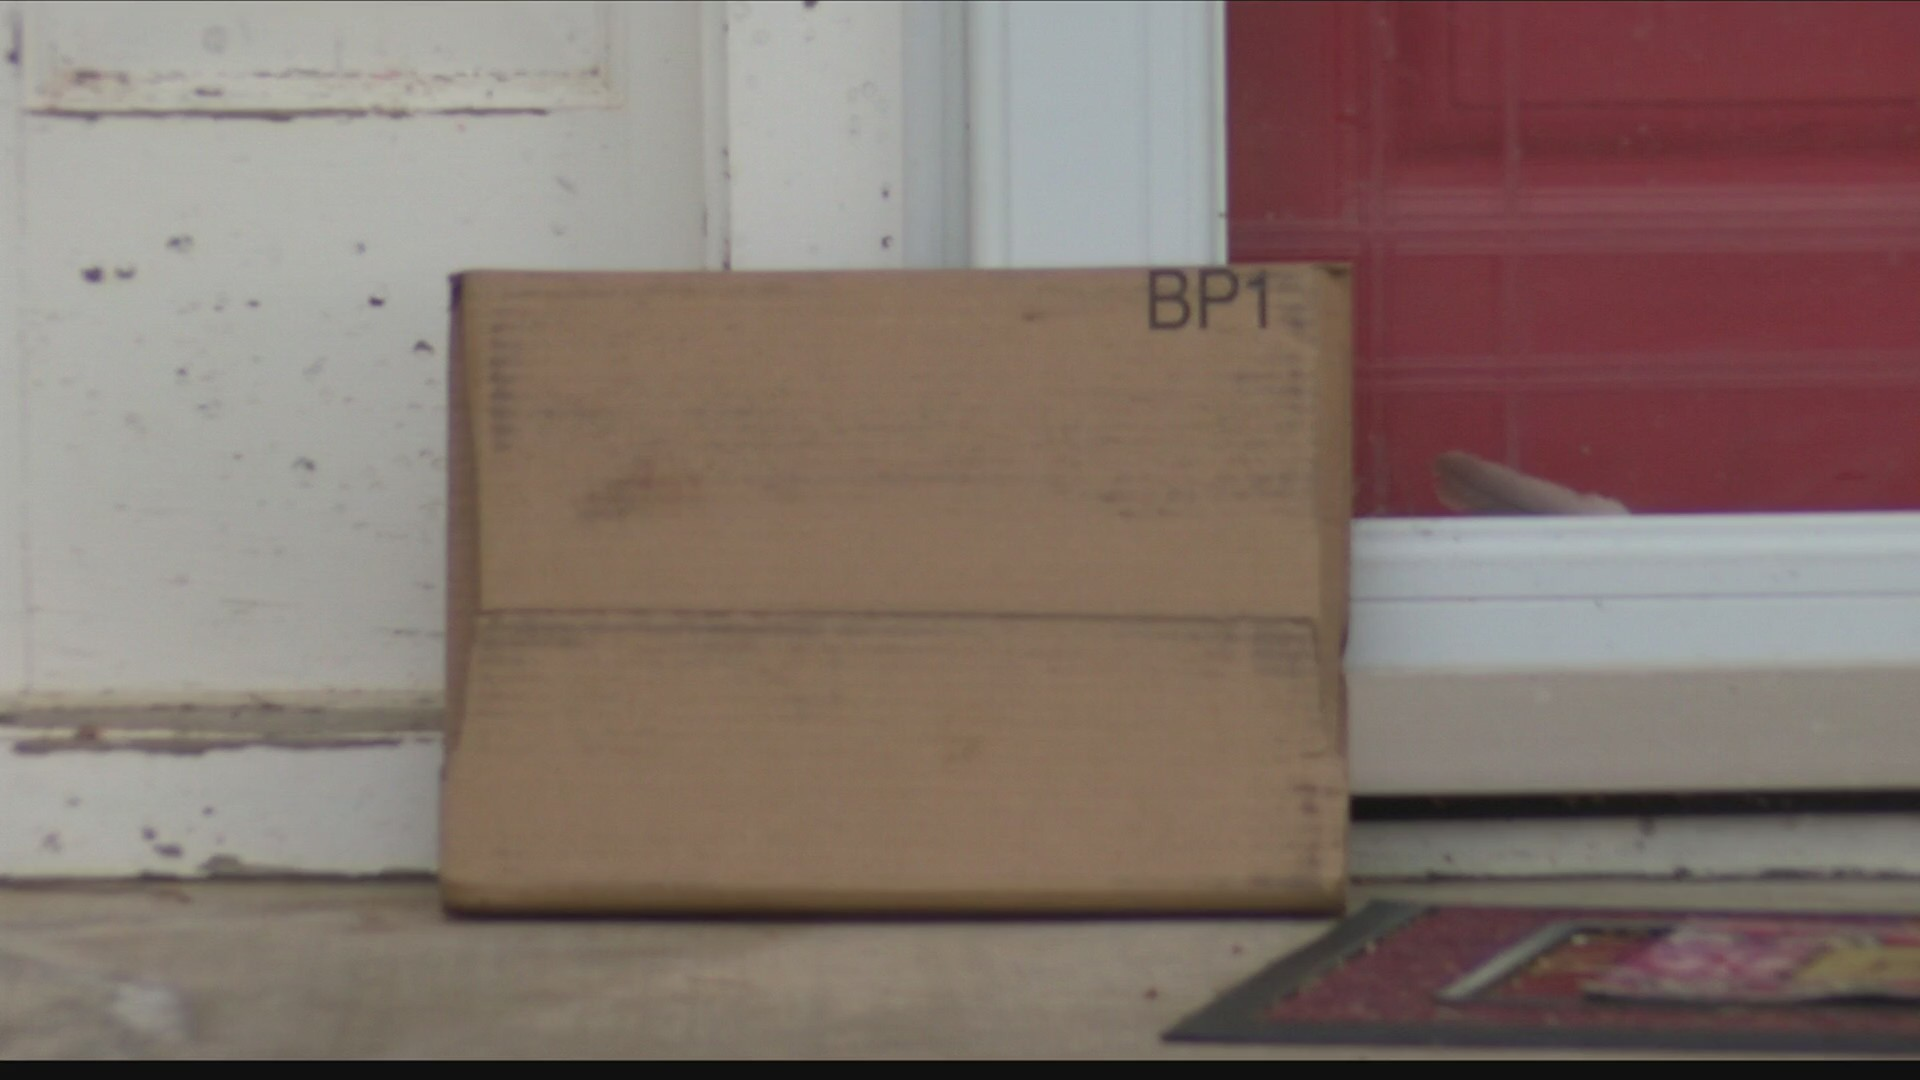 United Accepting Guest Packages for the Holidays to Combat Porch Pirates